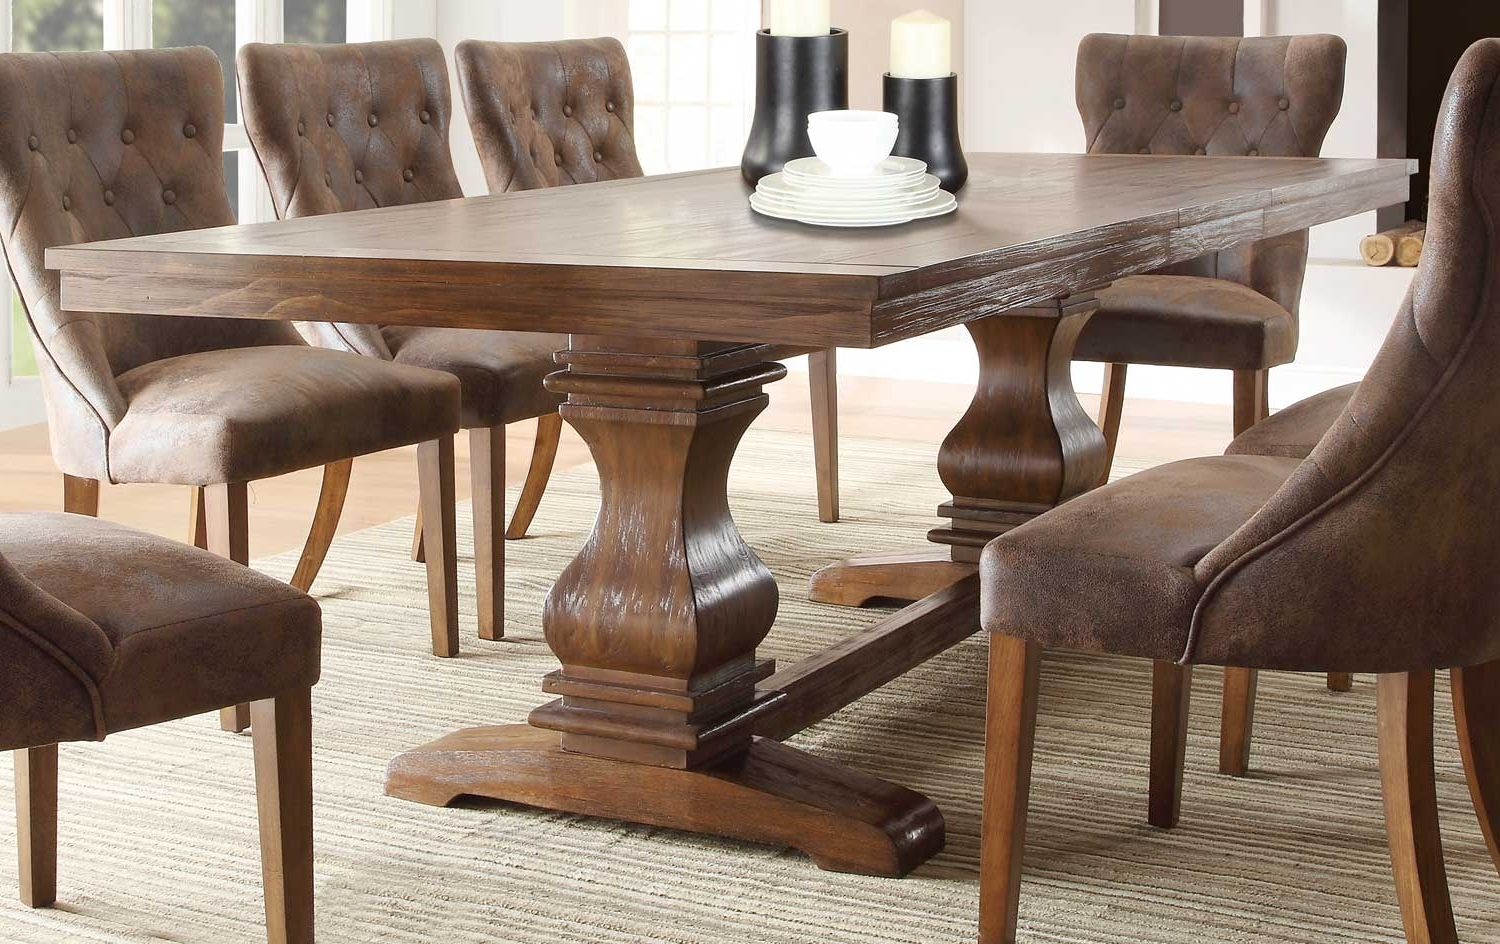 Homelegance Marie Louise Dining Table - Rustic Oak Brown 2526-96 with regard to Trendy Rustic Oak Dining Tables